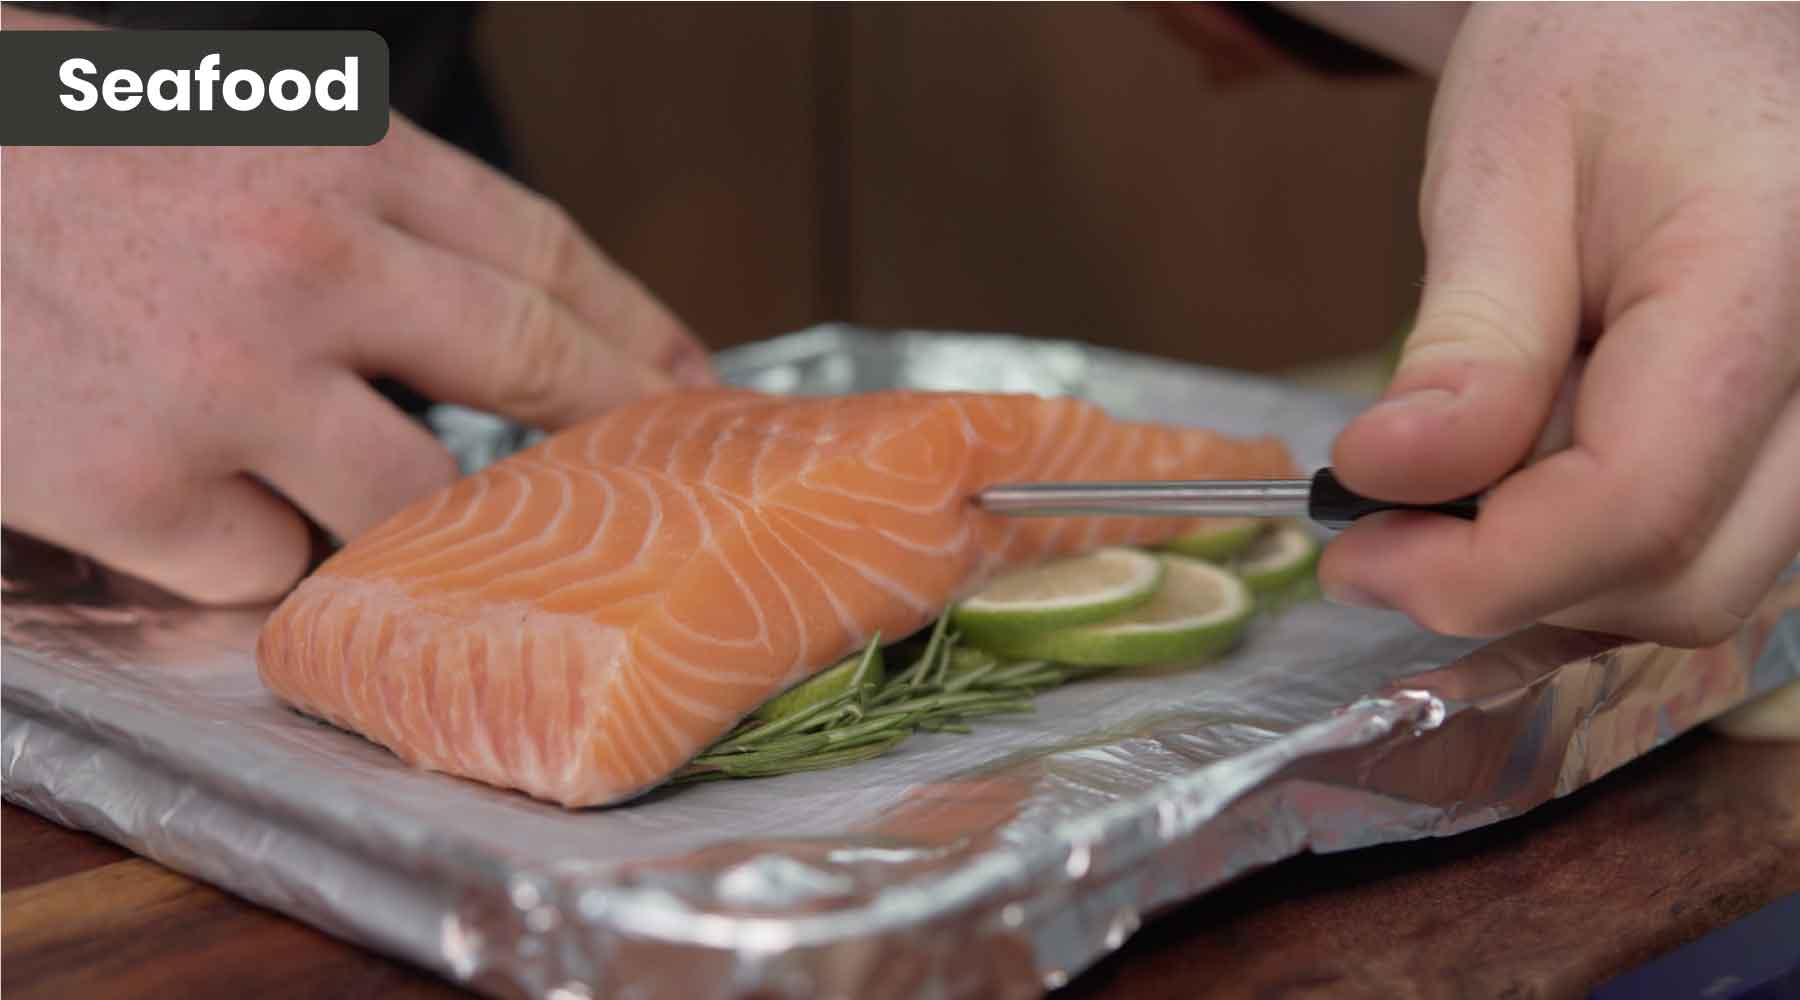 Inserting the meatstick inside salmon